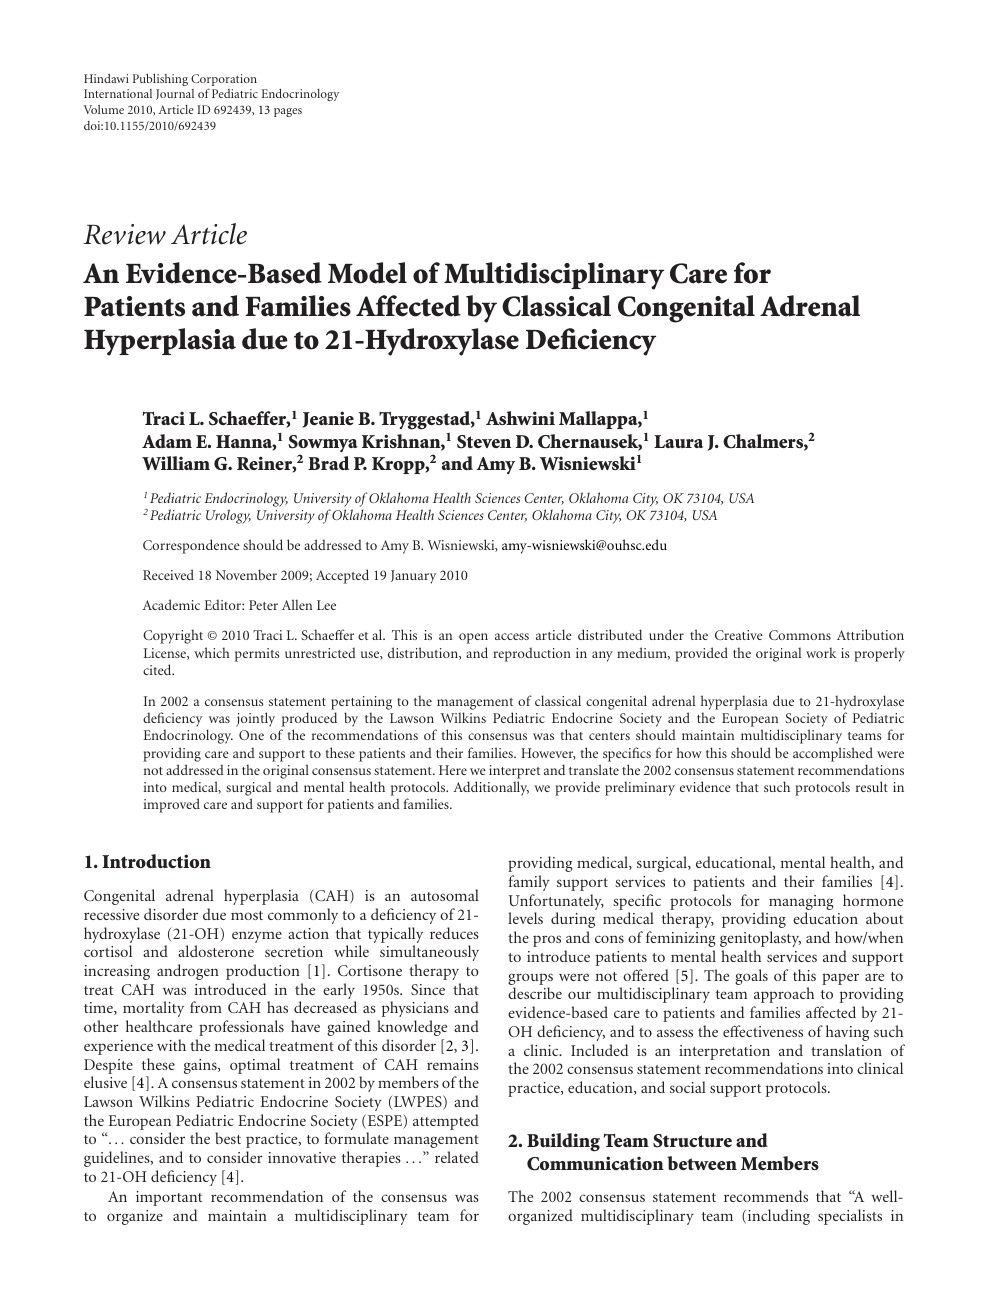 An Evidence-Based Model of Multidisciplinary Care for ...